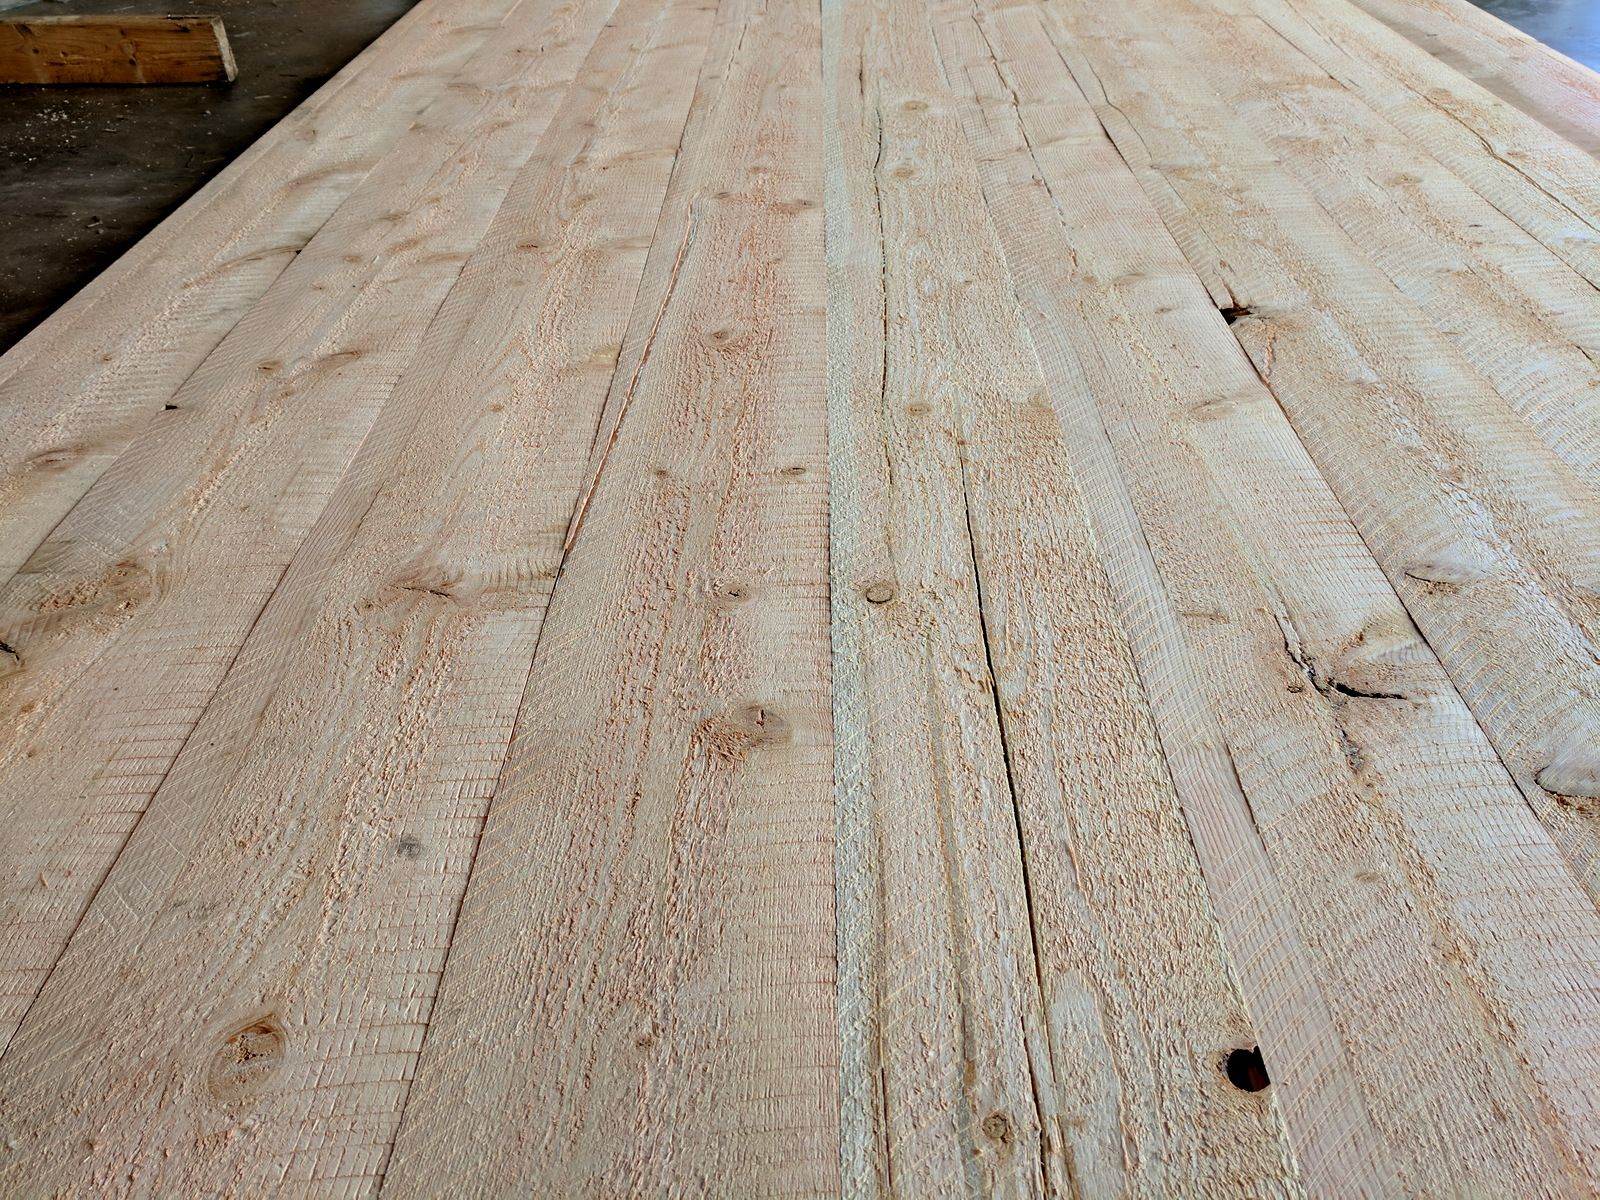 Unfinished Circular Sawn Douglas Fir Cabin Grade Now Available At 1 99 Per Sq Ft These Boards Have Been Pulle Reclaimed Wood Floors Rustic Wood Floors Lumber